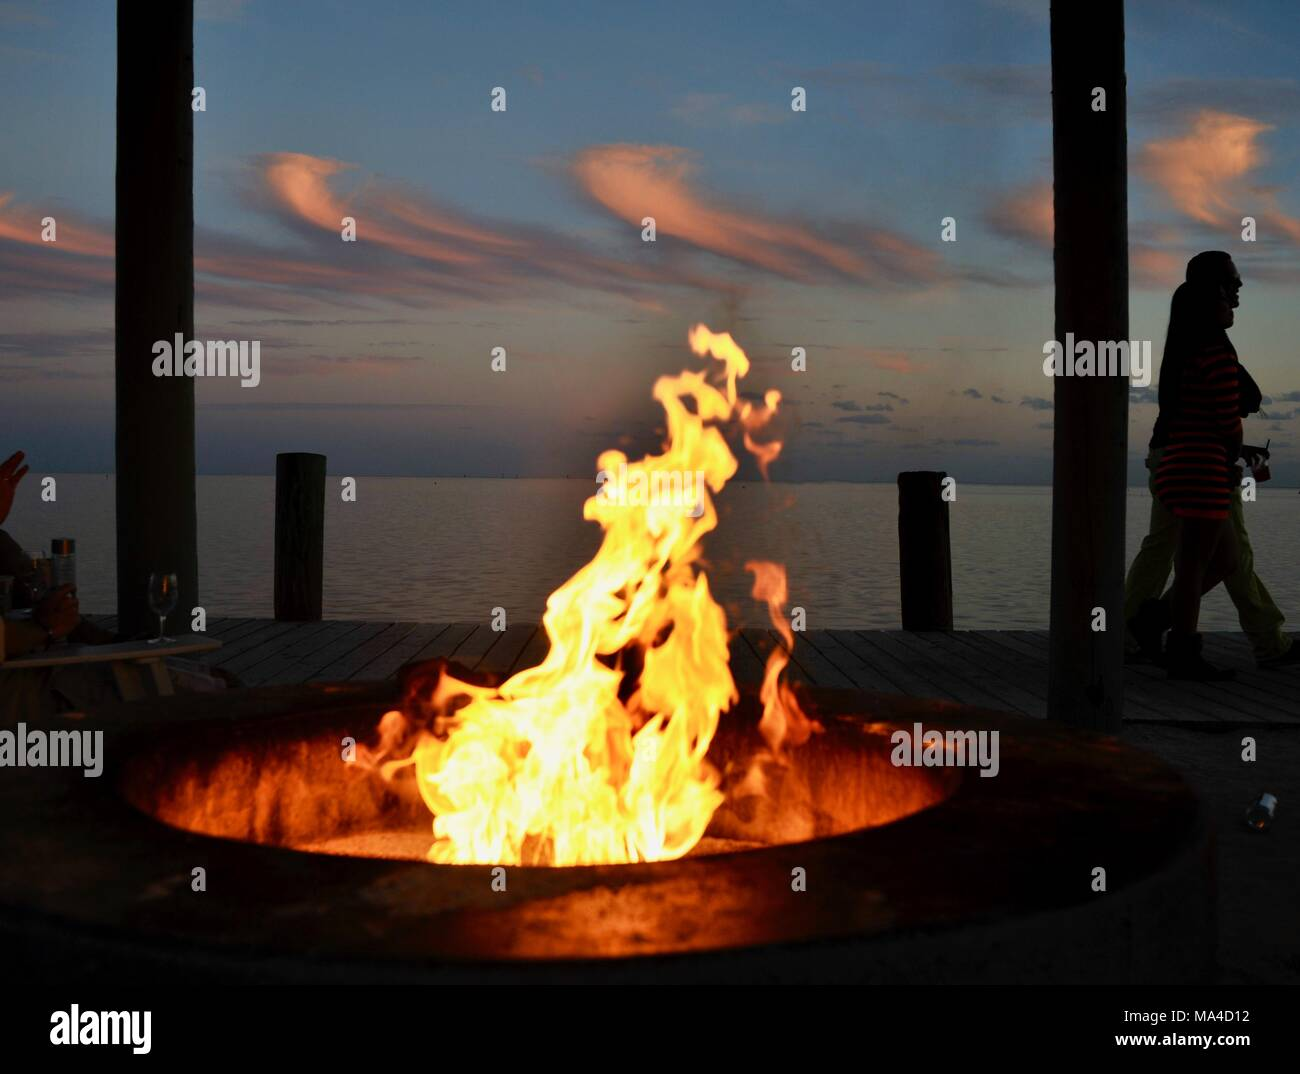 Flickering flames in outdoor fire pit along pier with couple walking by, in Florida Keys, USA - Stock Image